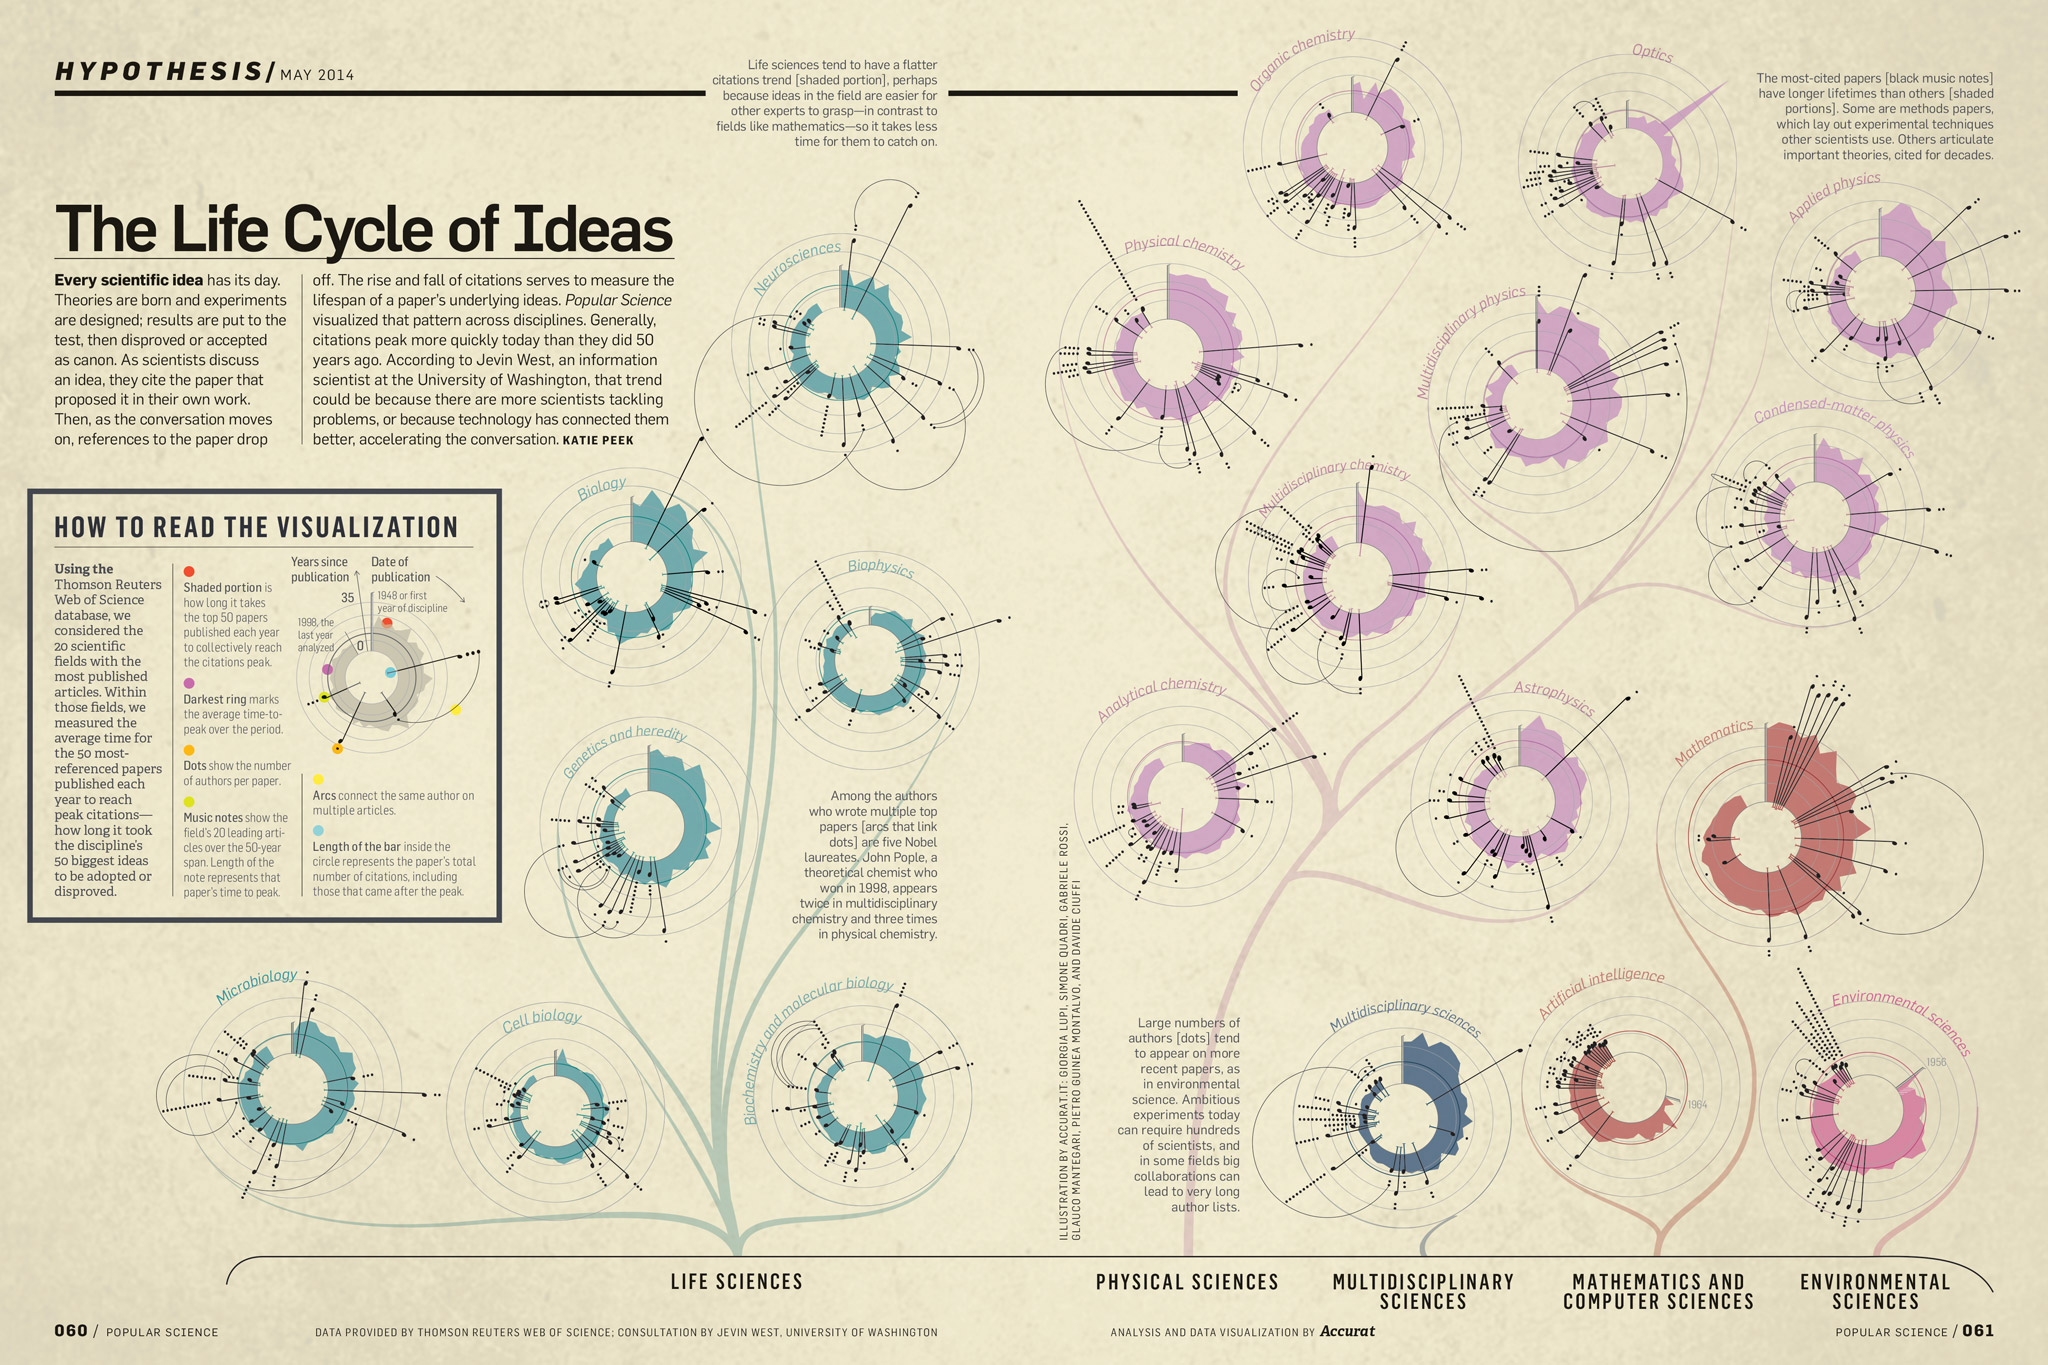 The Life Cycle of Ideas